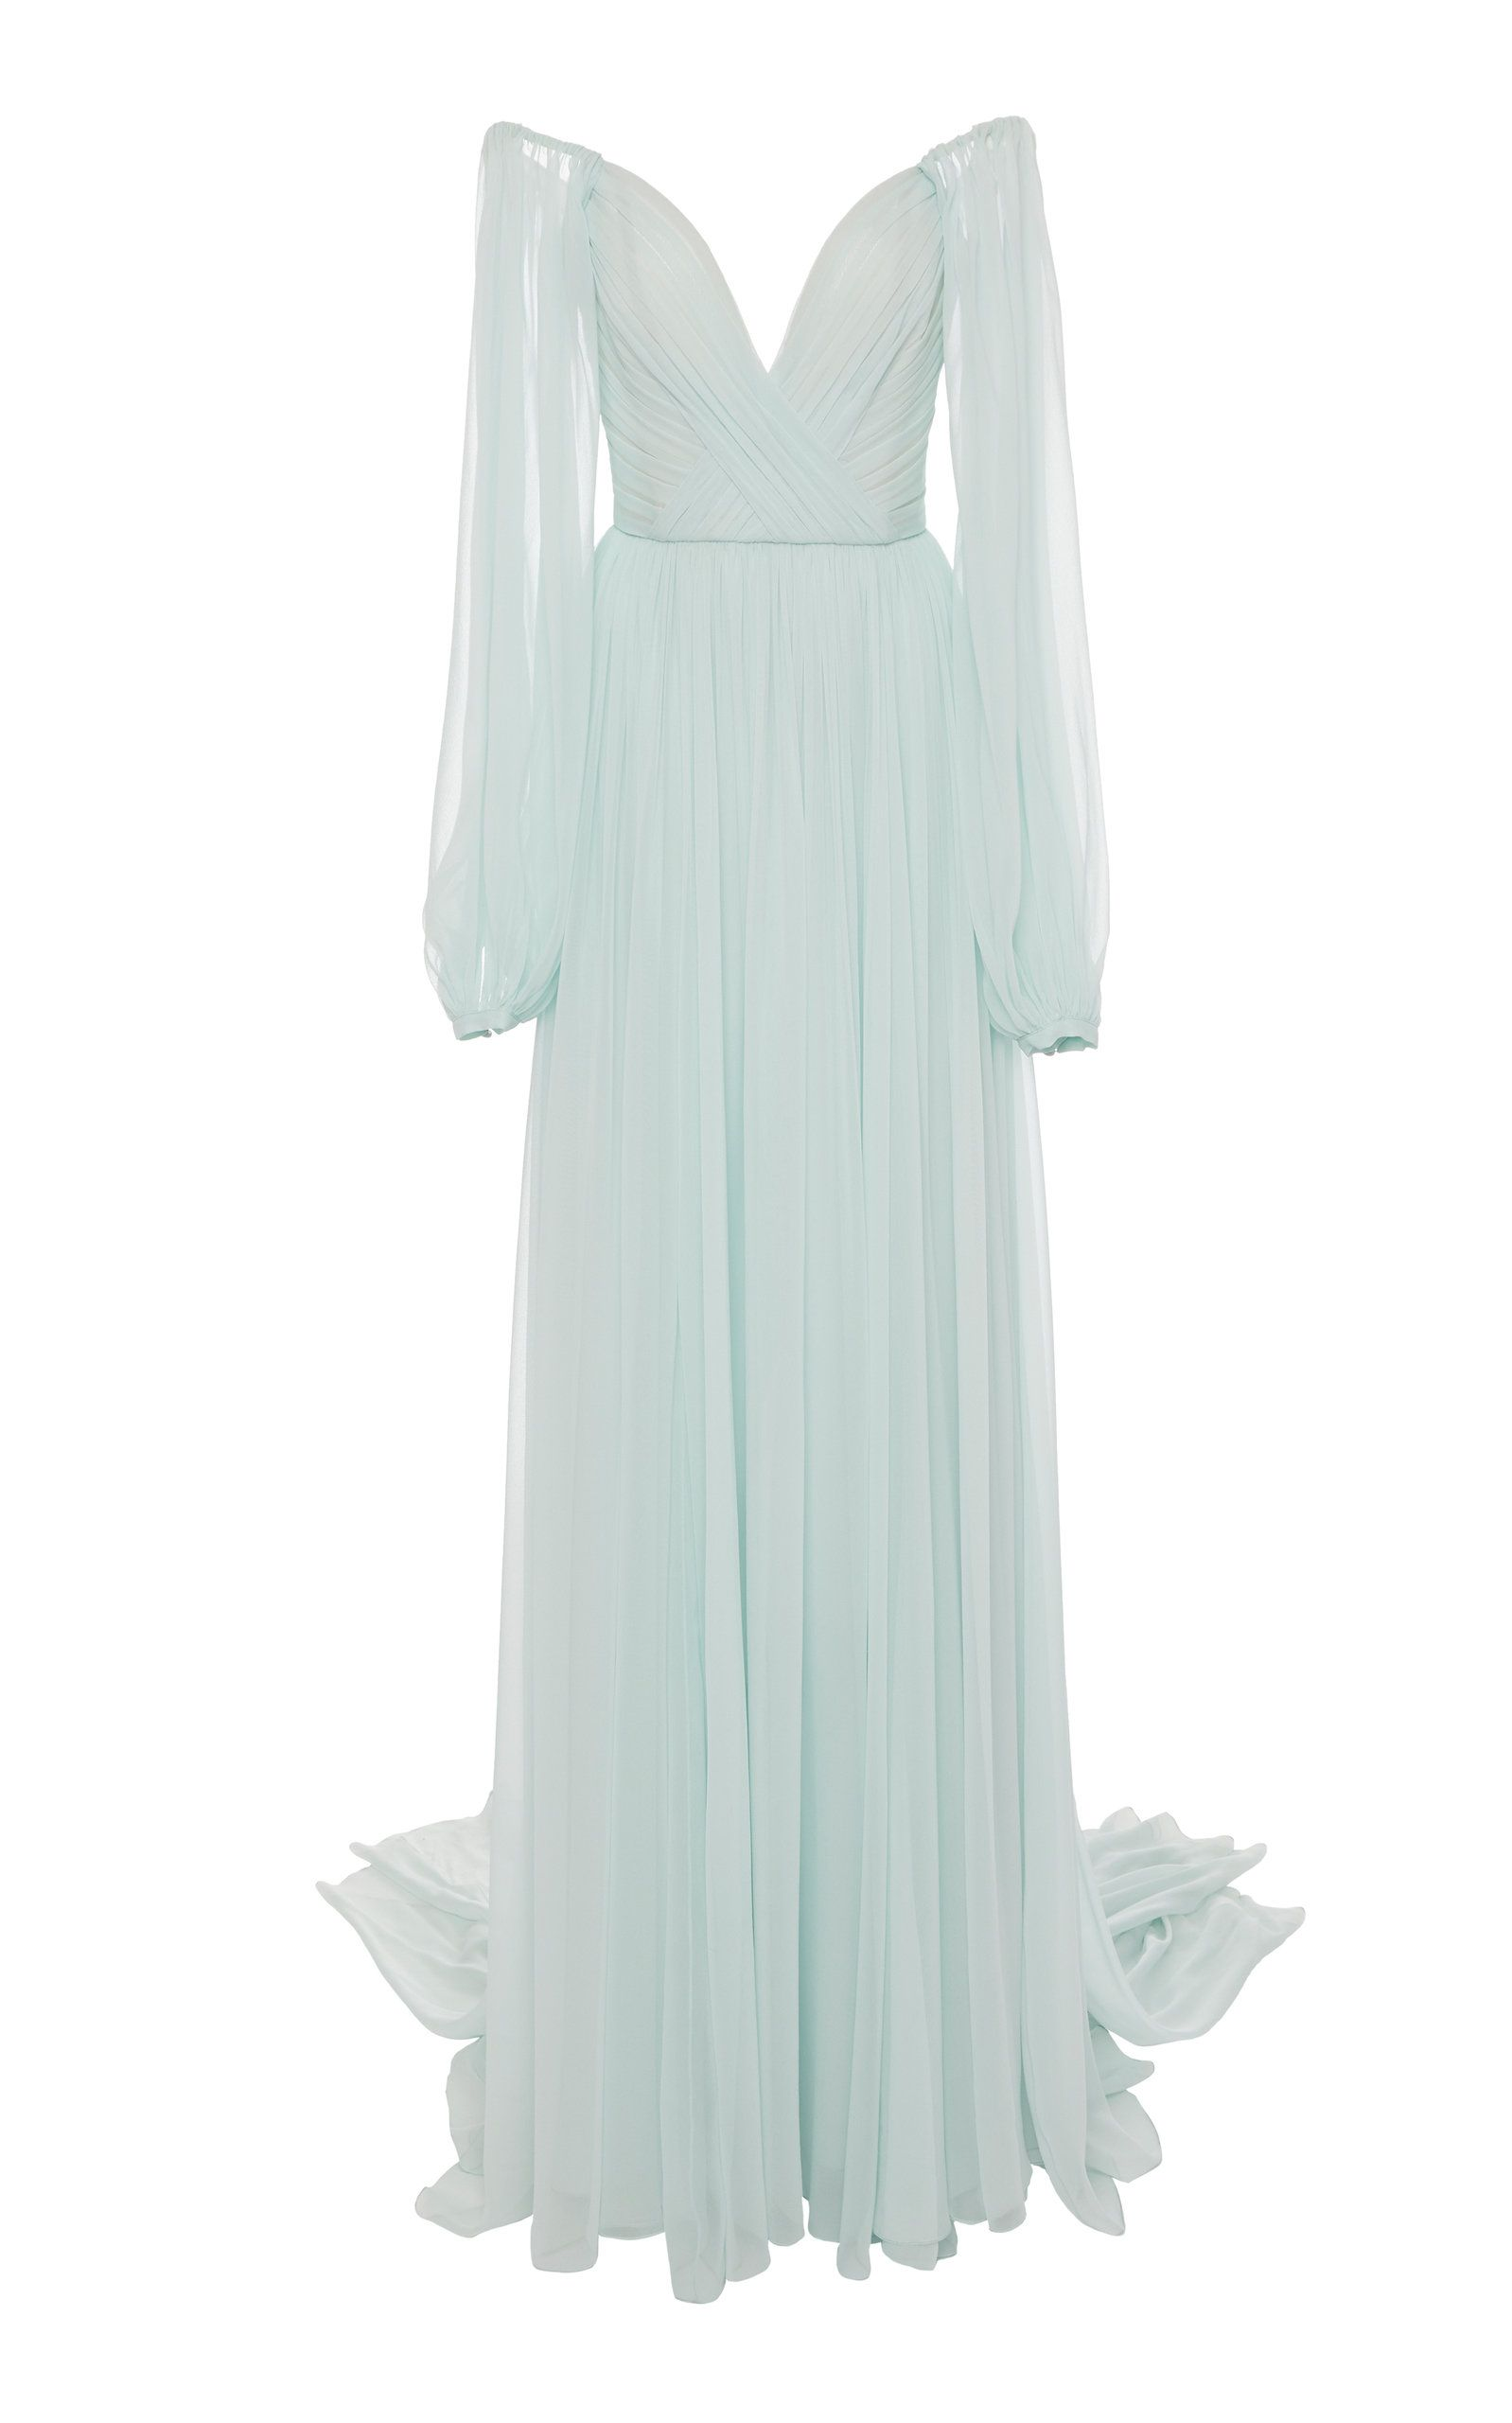 Monique Lhuillier's ethereal gown is something out of a fairytale—it's designed from wispy silk-chiffon that floats so elegantly as you walk. Designed with a plunging sweetheart neckline, it's complete with a relaxed skirt that falls to a slight train. Your look is complete with a metallic clutch and heeled sandals.